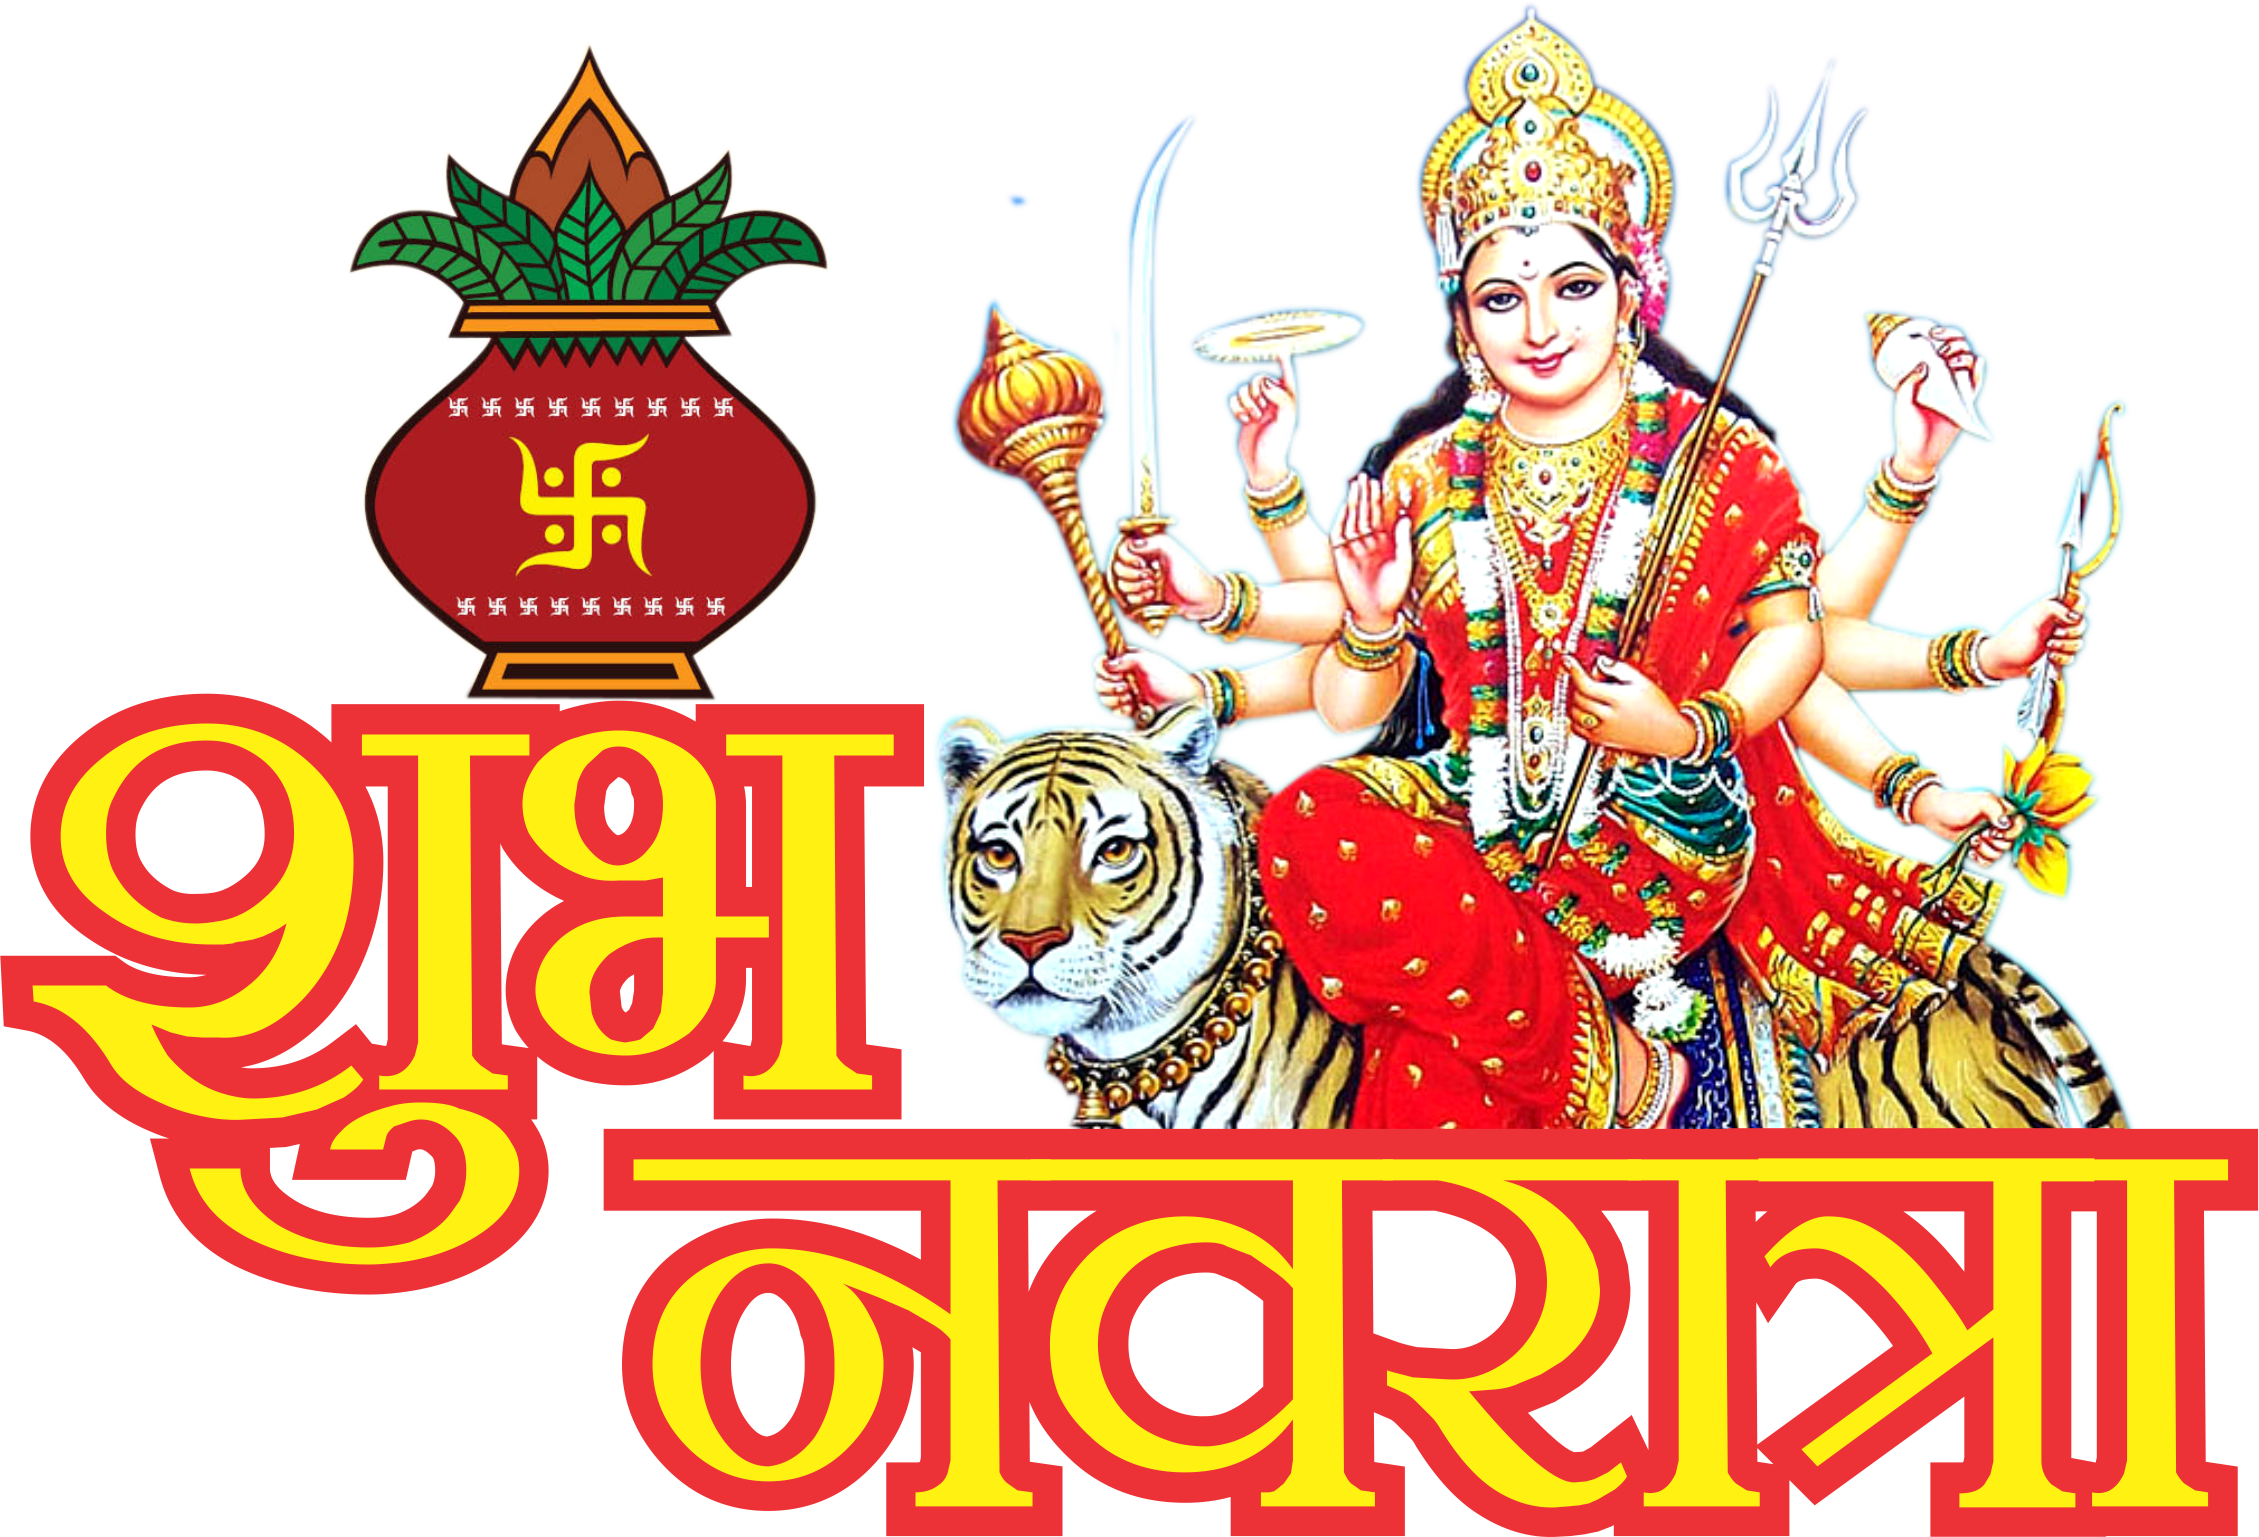 Navratri TEXT Design PNG High Quality images Free Download.